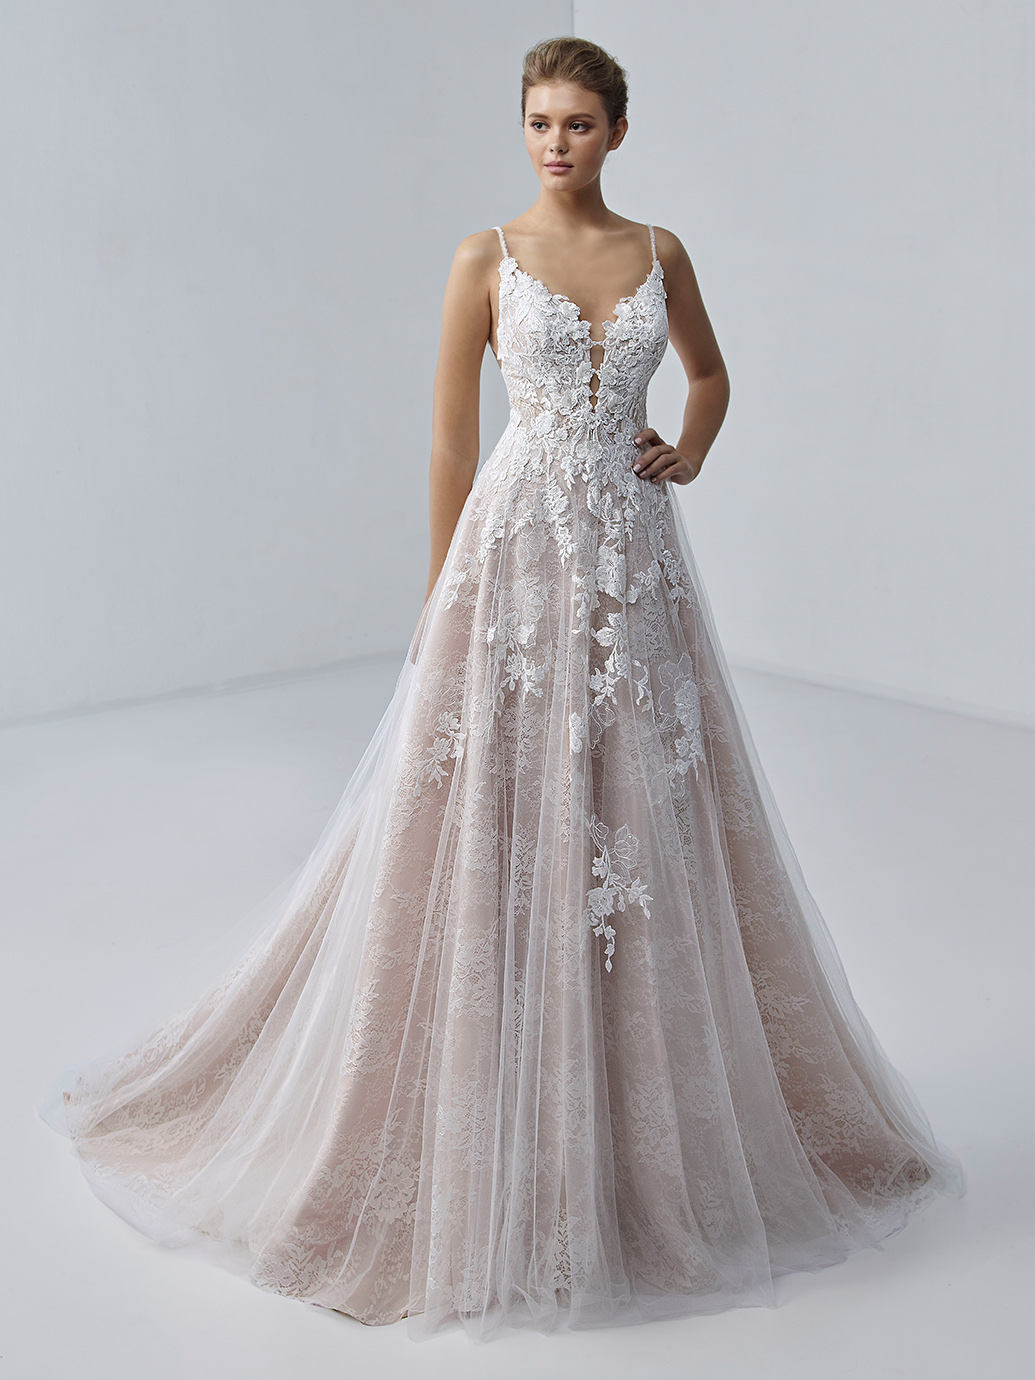 étoile-by-enzoani-2021-Dress-Finder-chloe